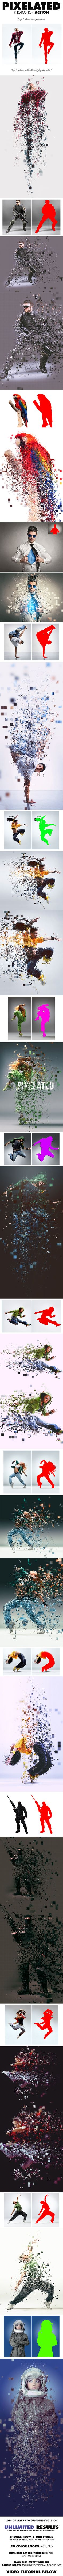 Pixelated Photoshop Action. Download: http://graphicriver.net/item/pixelated-photoshop-action/11247218?ref=ksioks